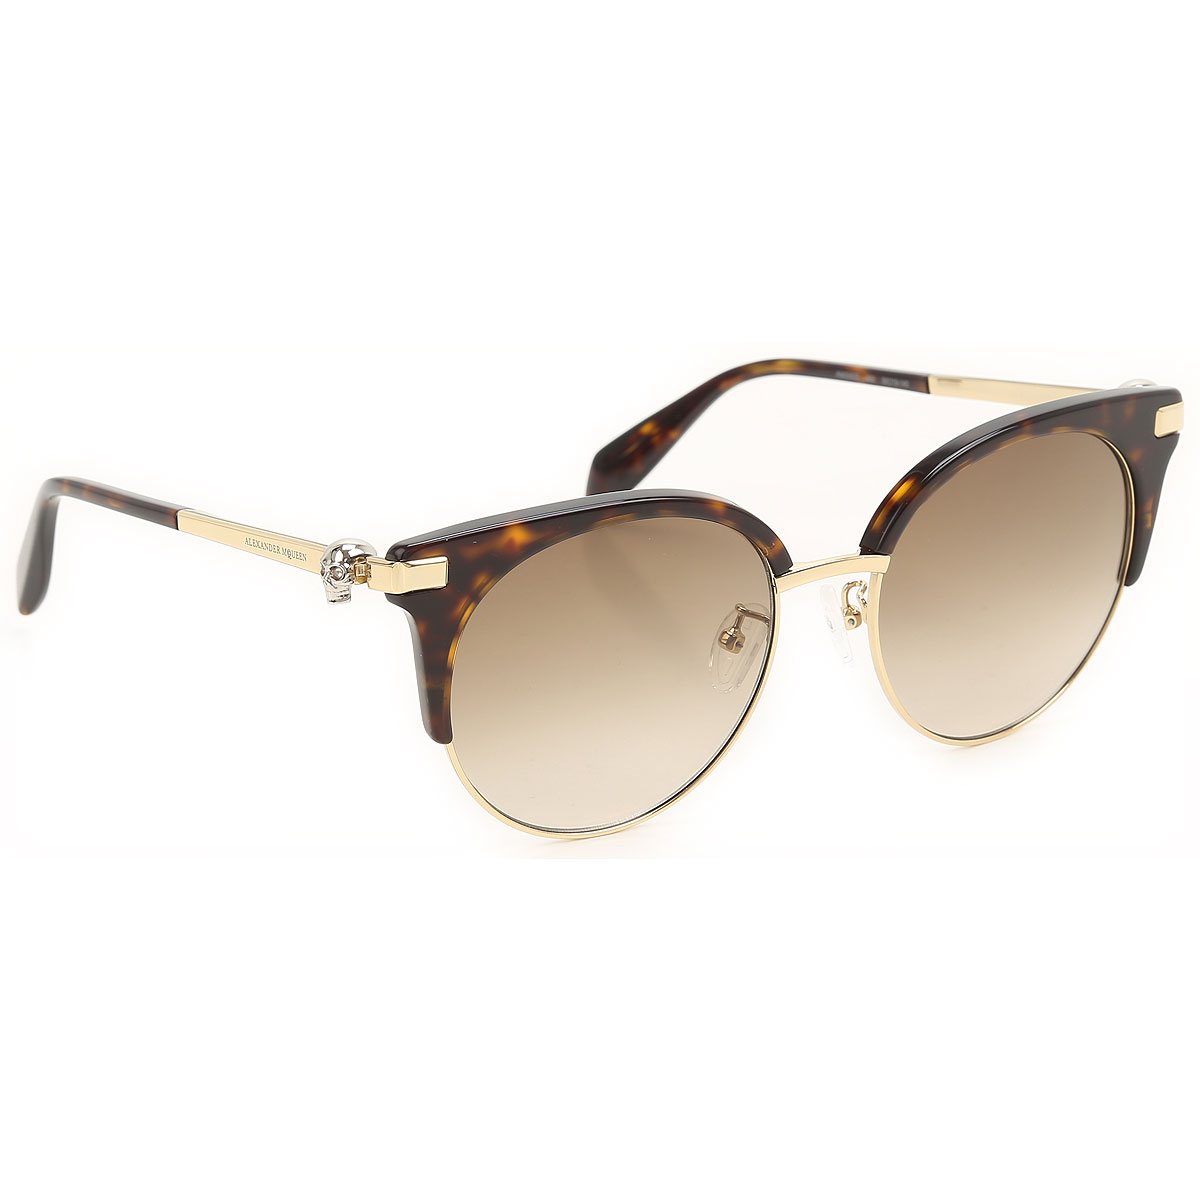 Alexander McQueen Sunglasses On Sale, Gold, 2021 from Alexander McQueen